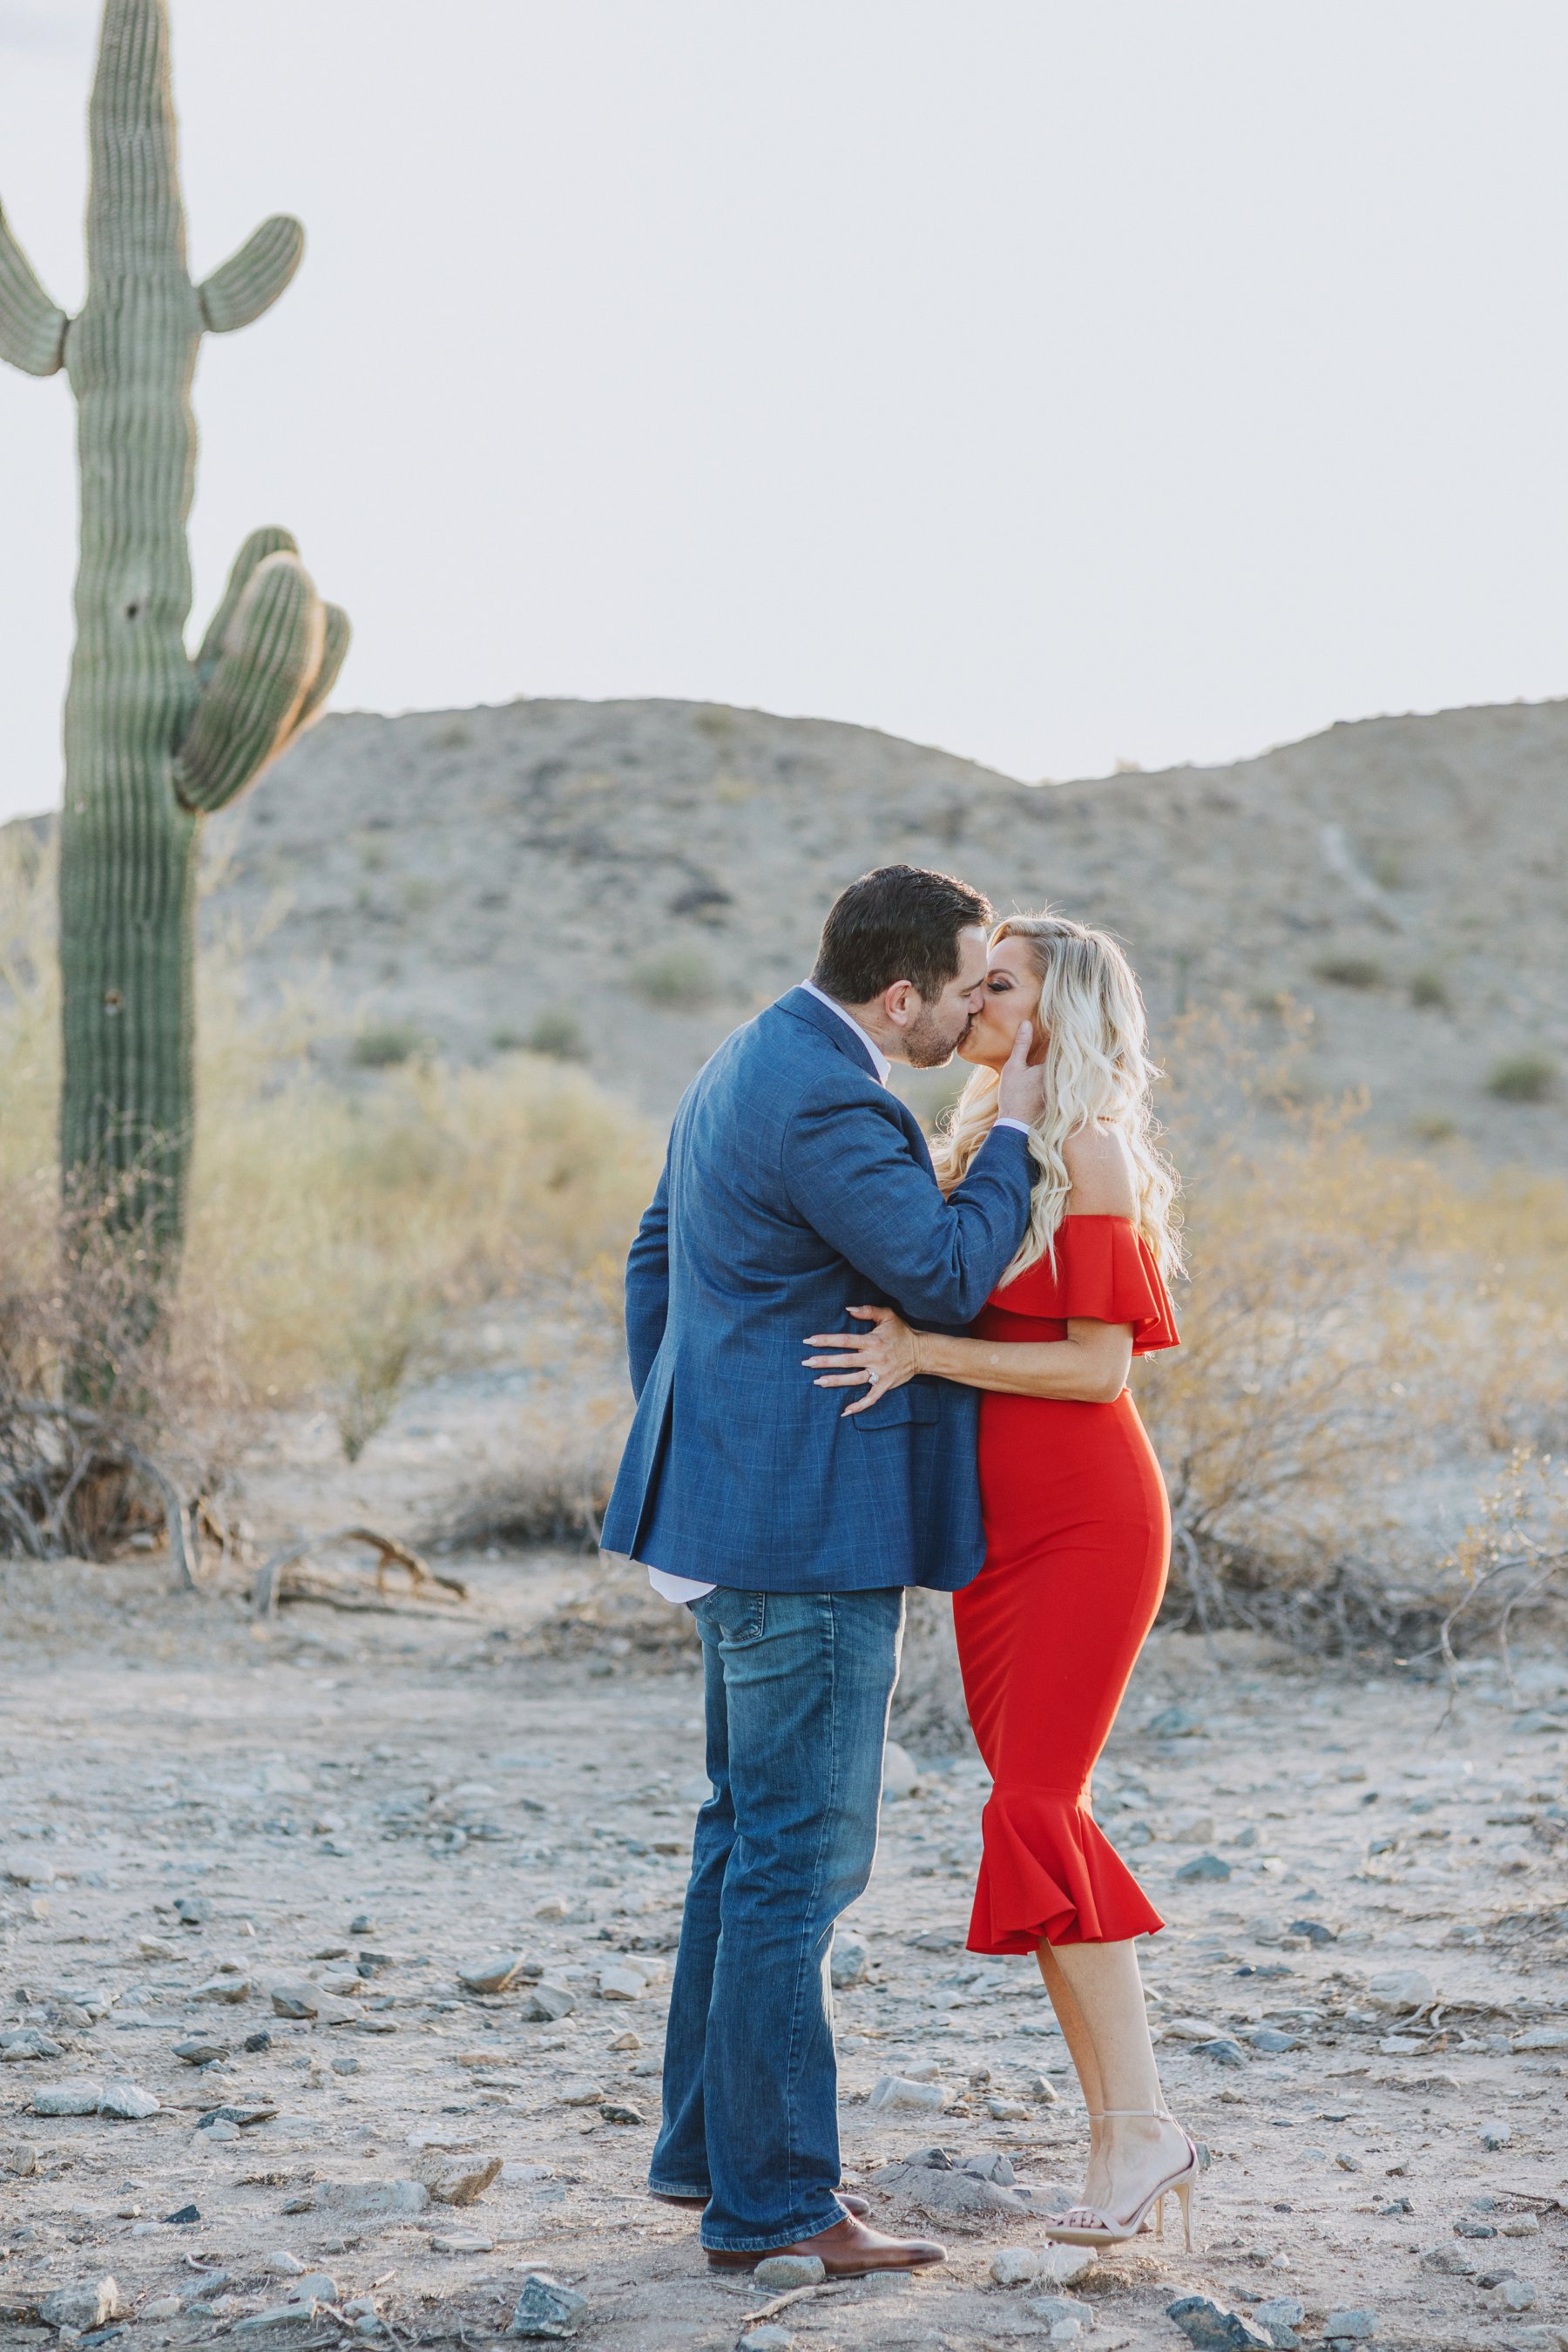 Phoenix Arizona Scorpion Gulch desert engagement session, Melayne + Drew by Diana Elizabeth Photography - www.dianaelizabeth.com // off shoulder red dress with ruffles